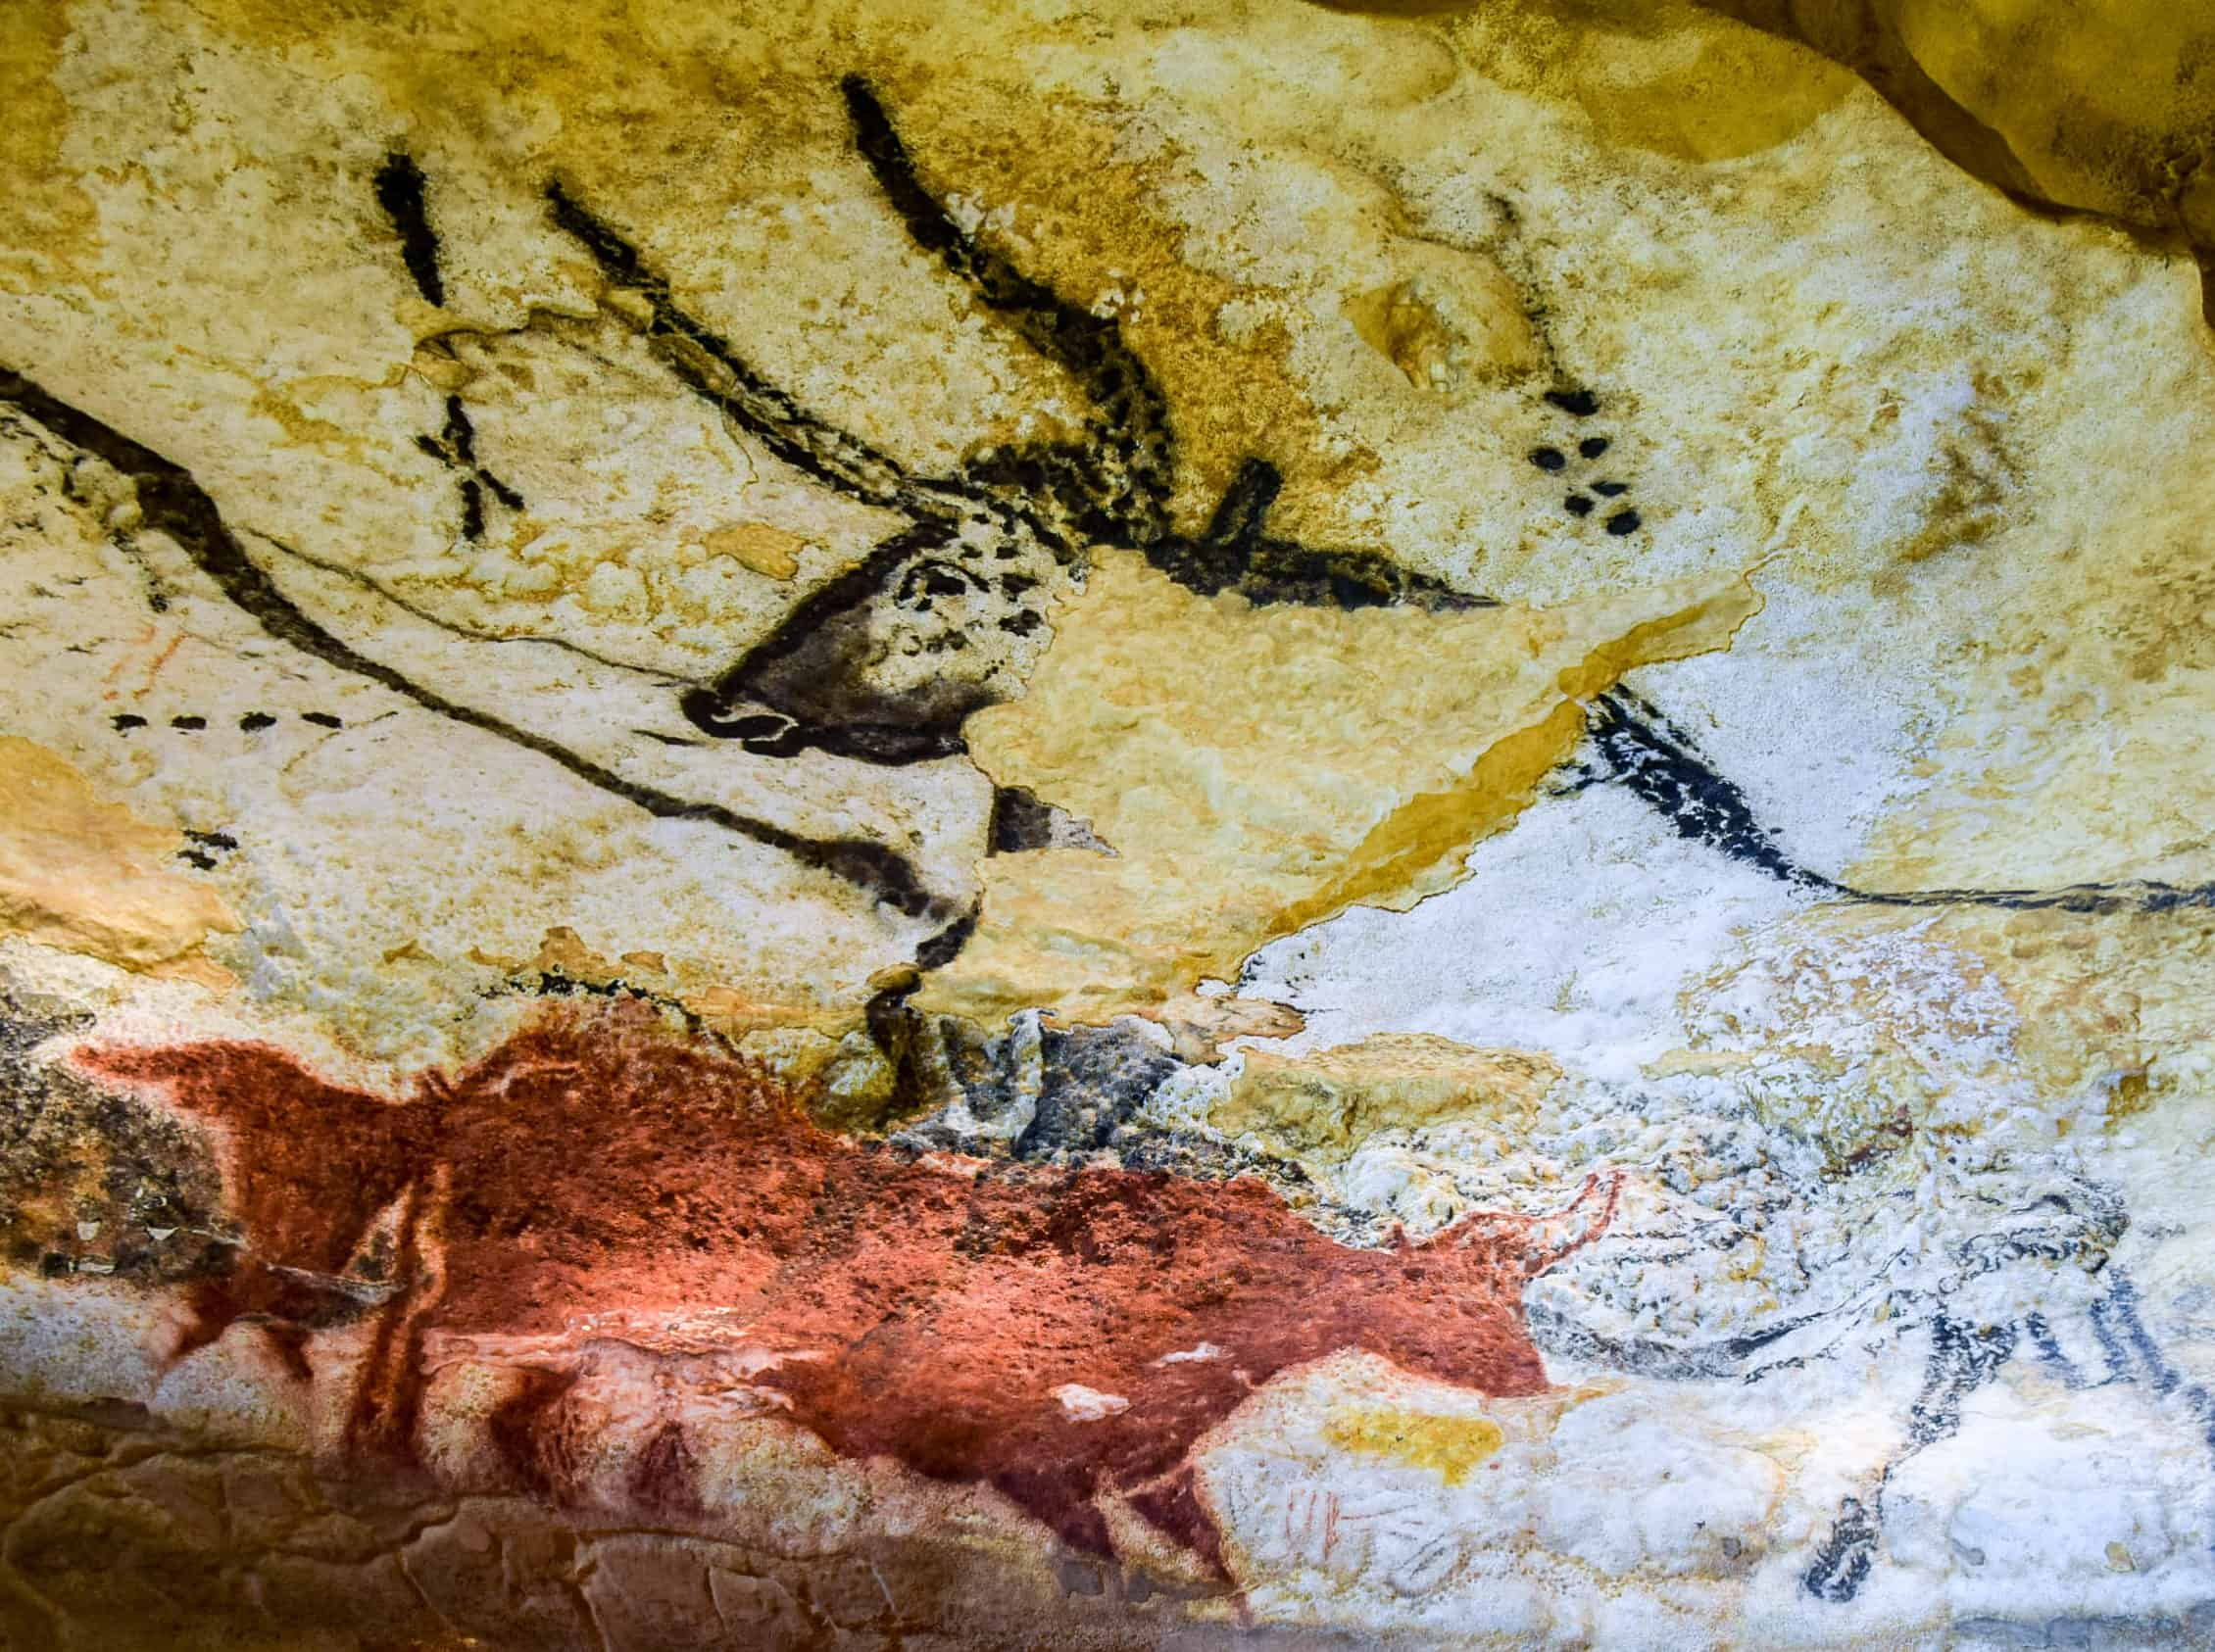 dating lascaux cave paintings Dating chronological questions about the age of lascaux's cave paintings, over what period they were created, and the identity of the.